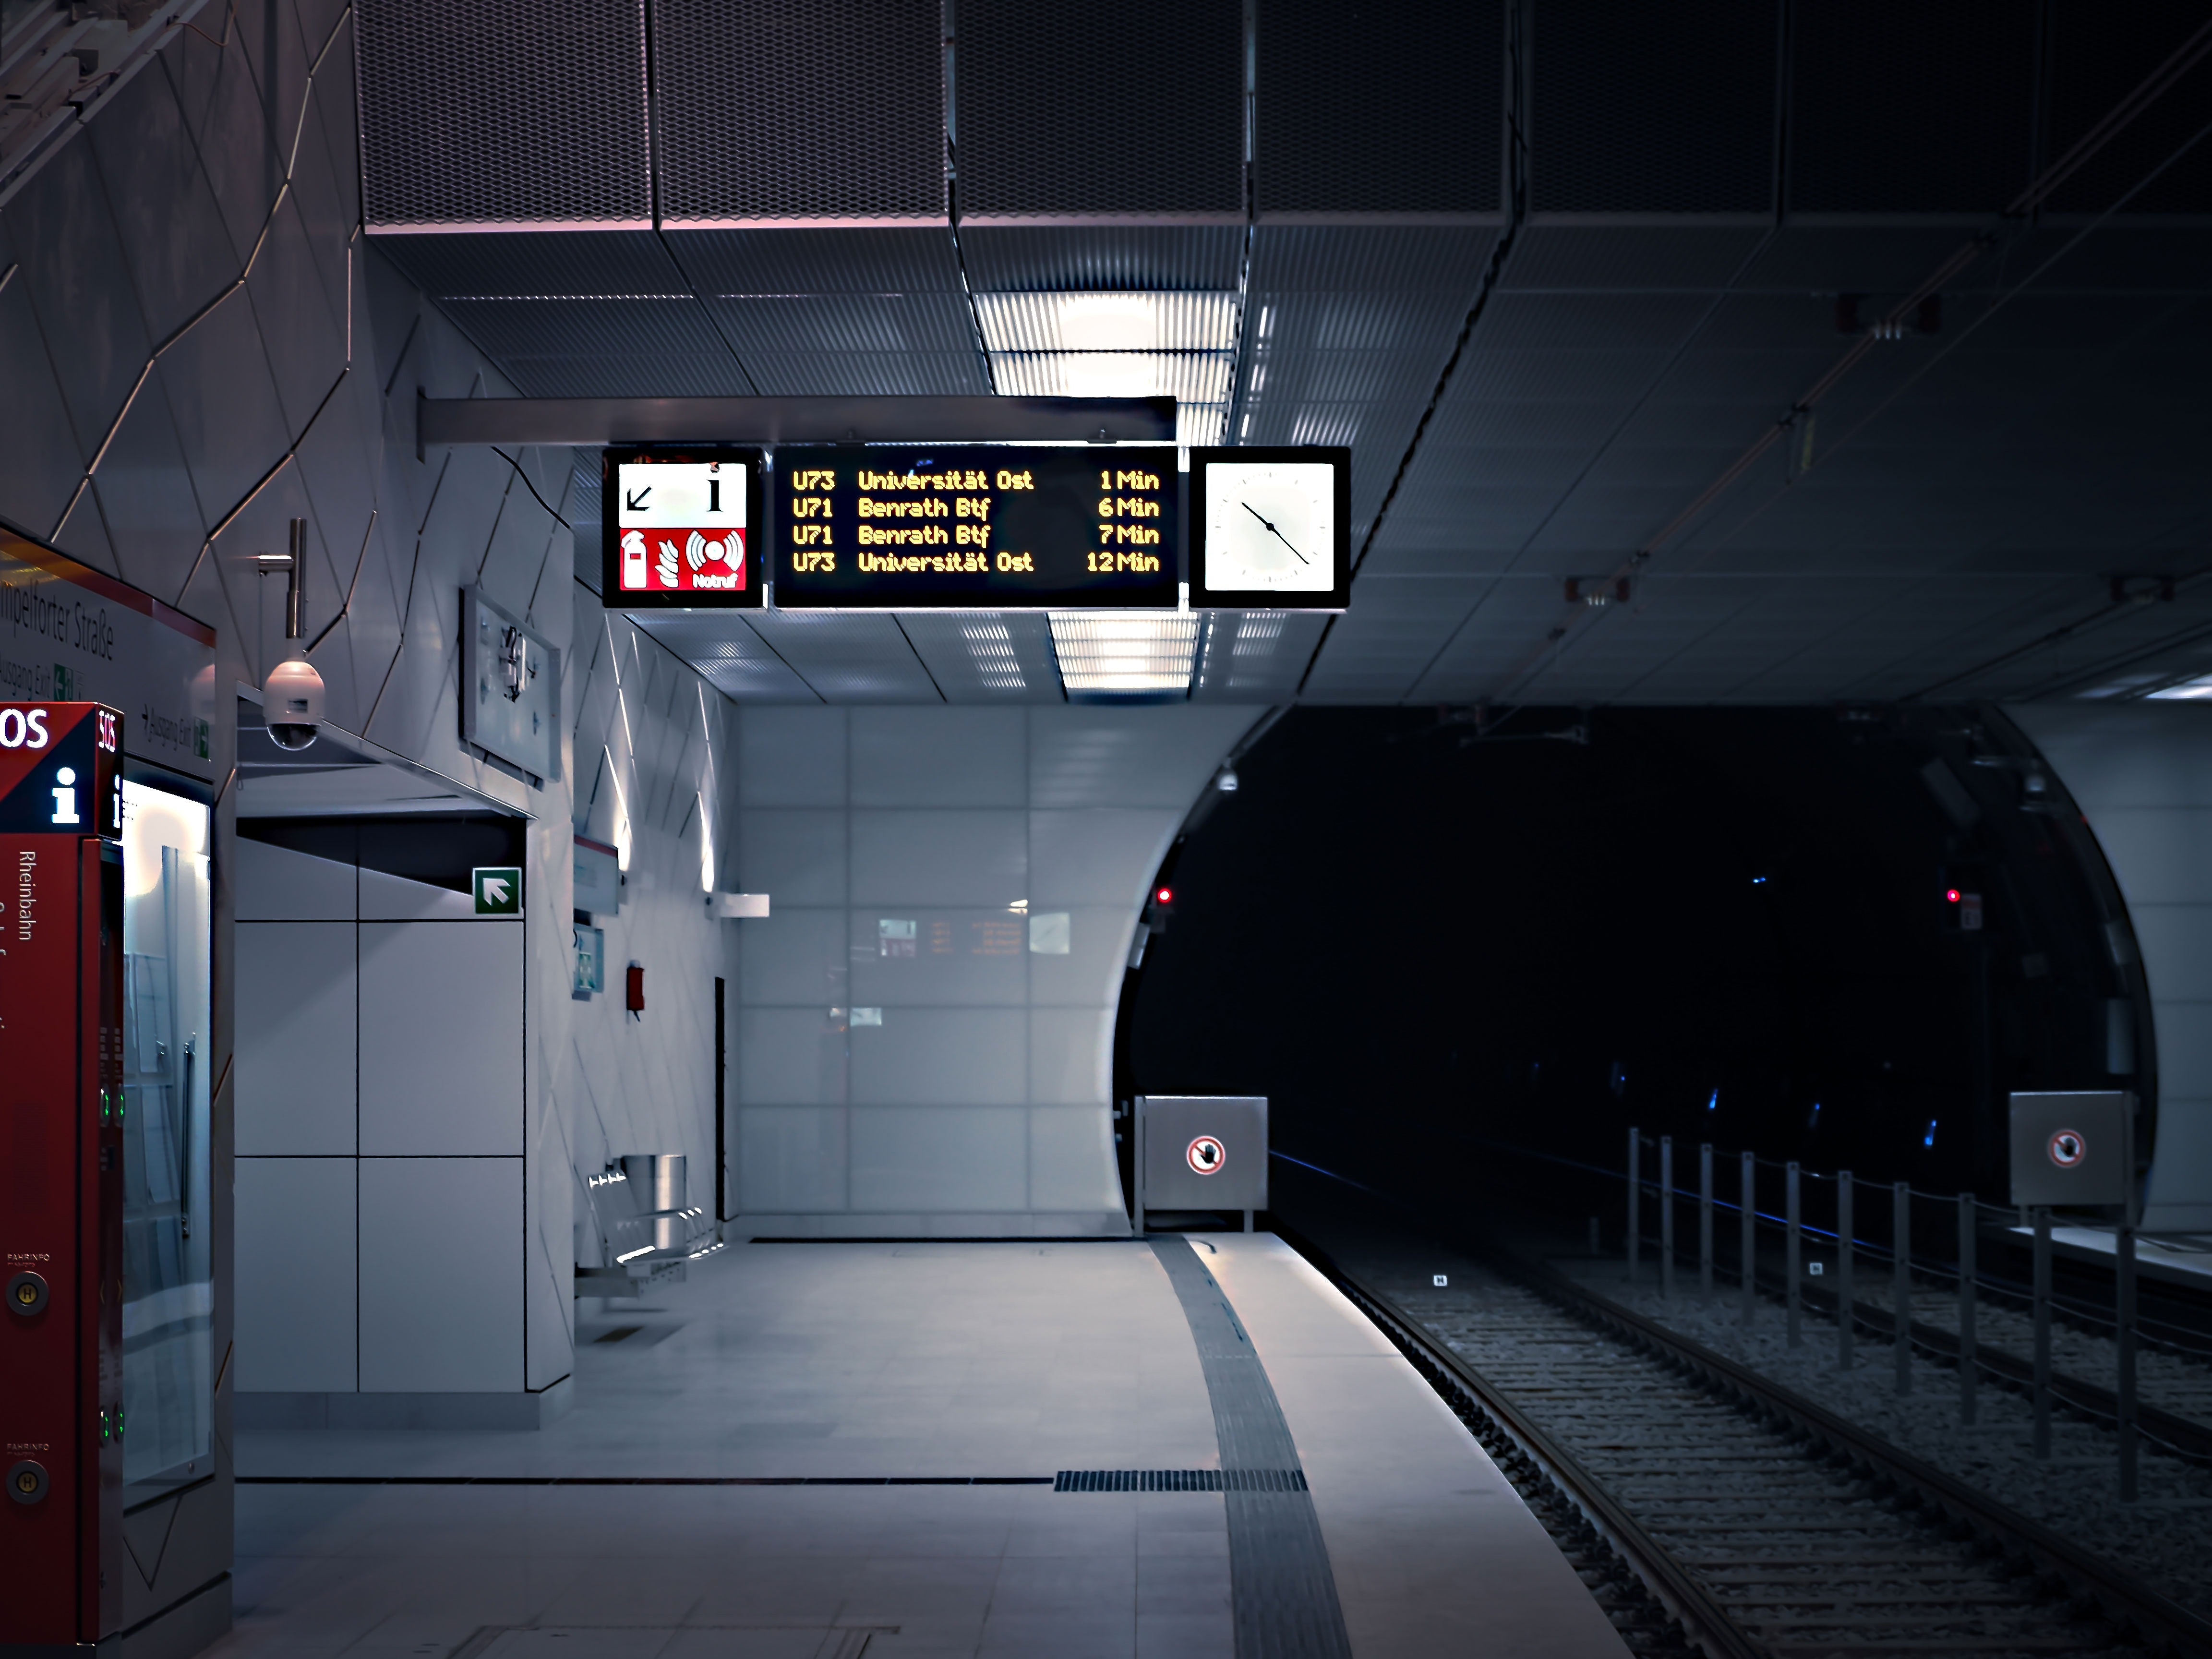 Interior of Airport, Station, Vehicle, Urban, Tunnel, HQ Photo